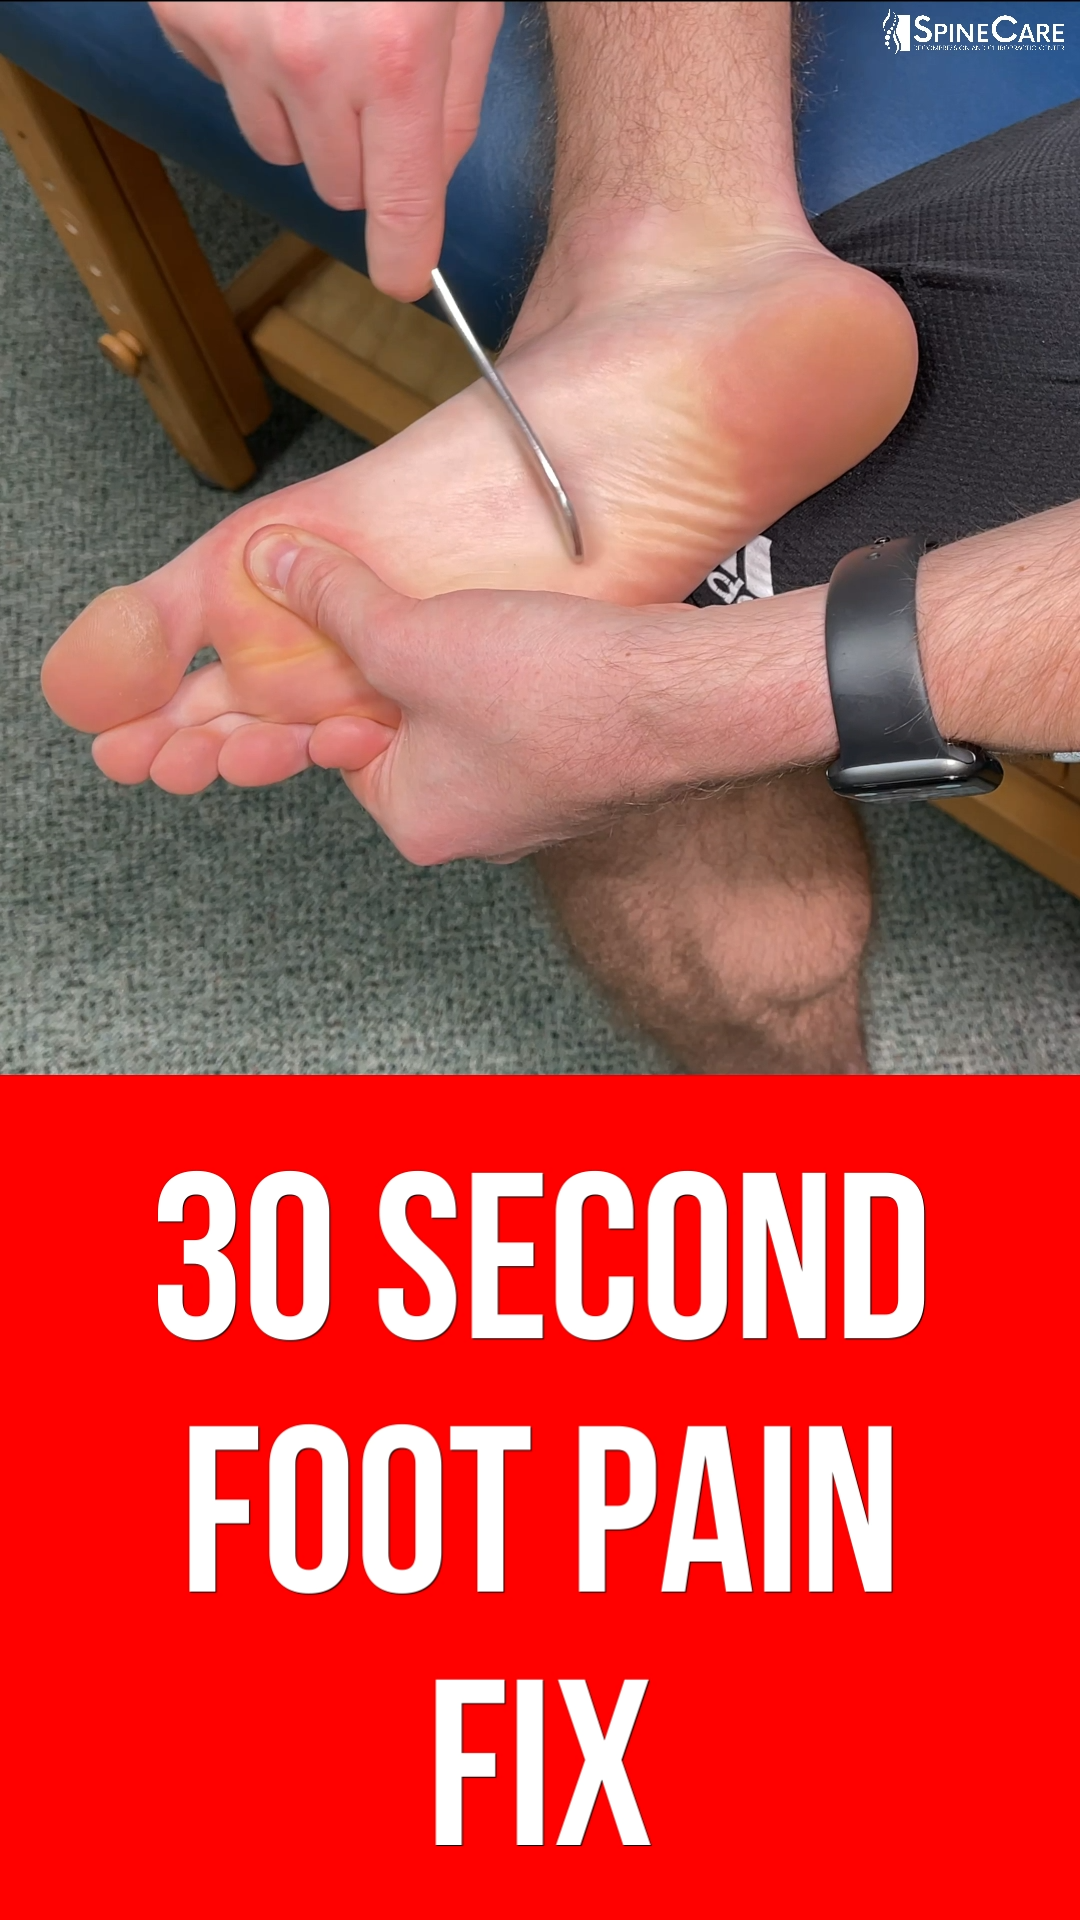 How to Relieve Foot Pain in 30 SECONDS